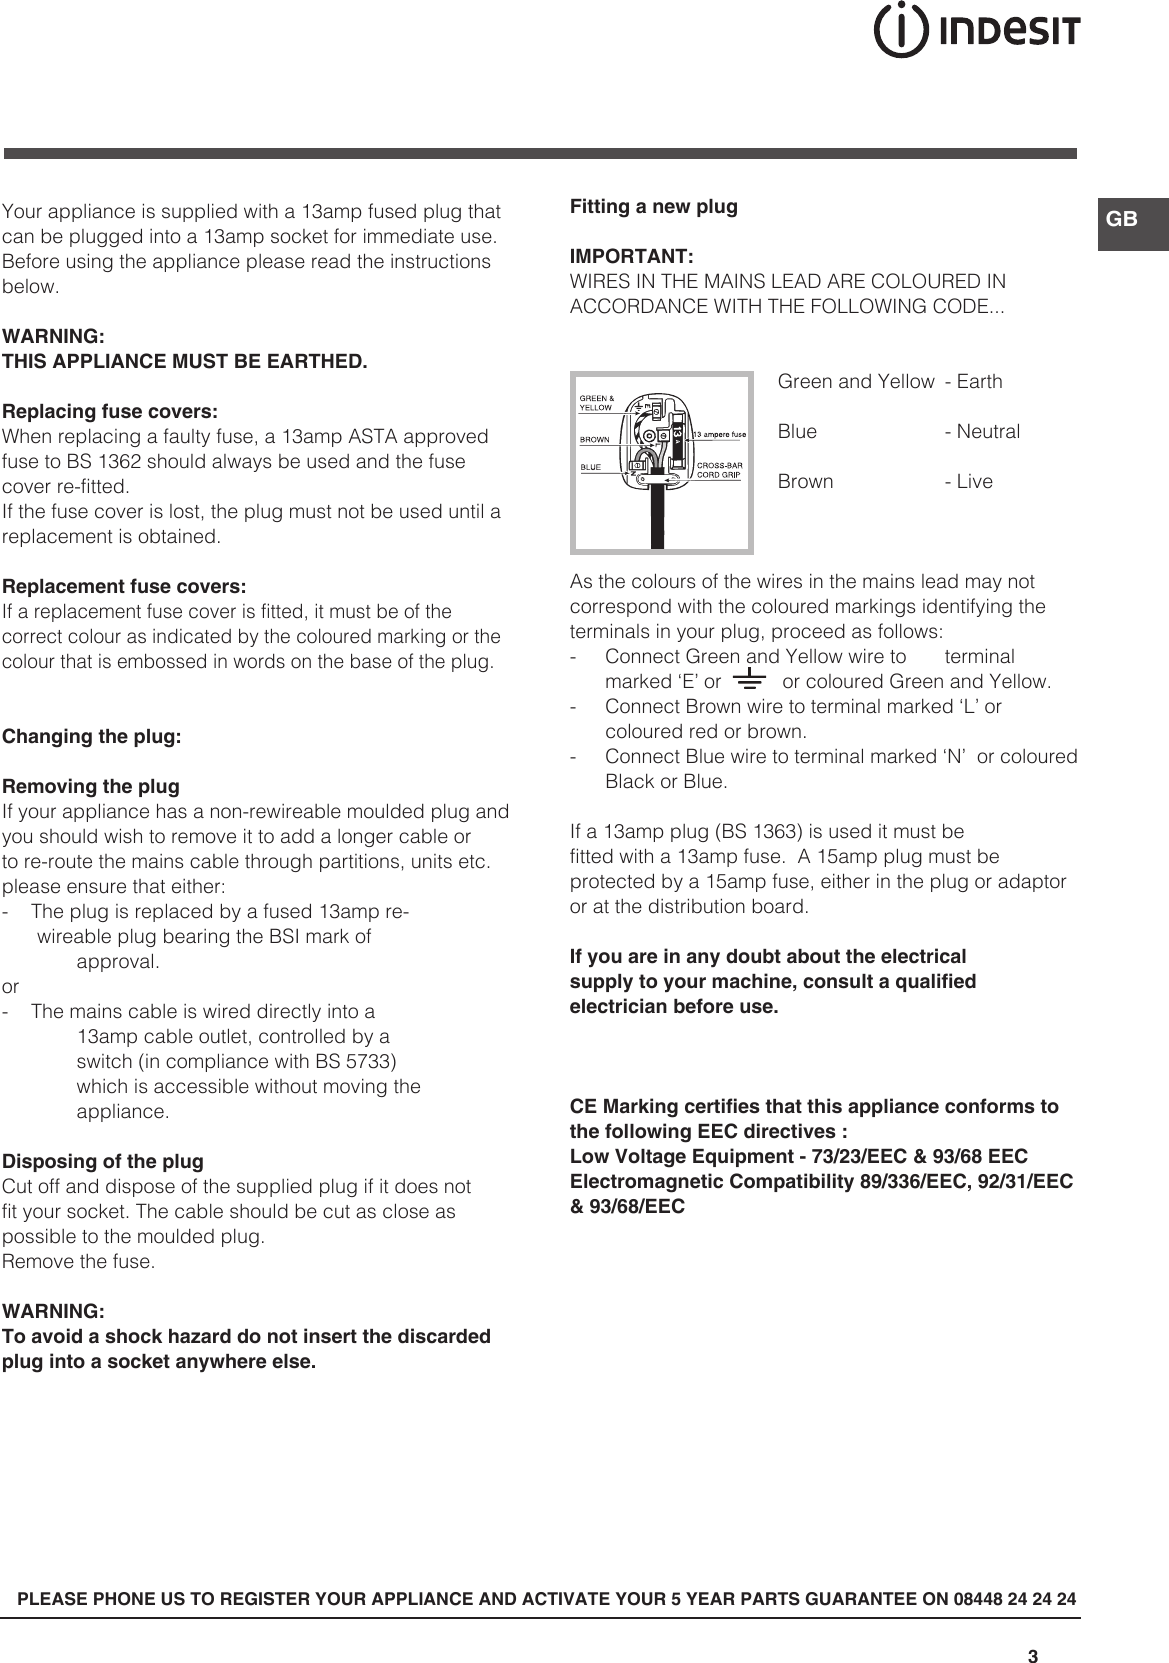 Indesit Freezer Ca 55 Xx Uk Users Manual Plug Furthermore How To Wire 240v Outlet Also Wikipedia Power Plugs Page 3 Of 12